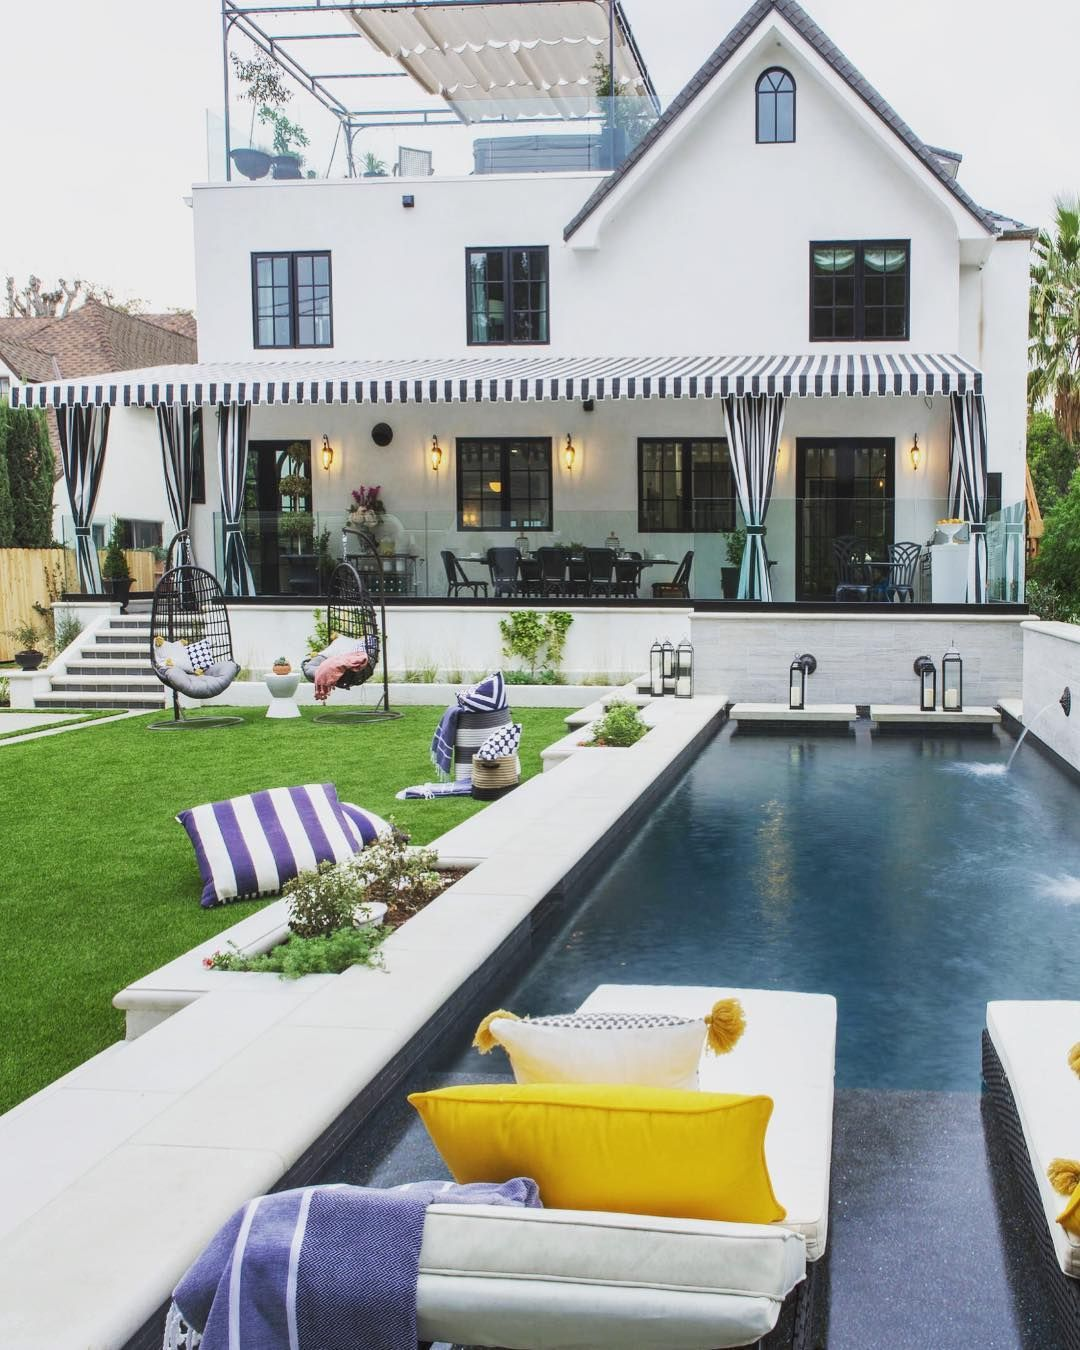 Video The 10 Best Home Decor In The World Diyhomedecor Diy Home Decor Homedecor Home Dec Swimming Pools Backyard Backyard Pool Swimming Pool Designs